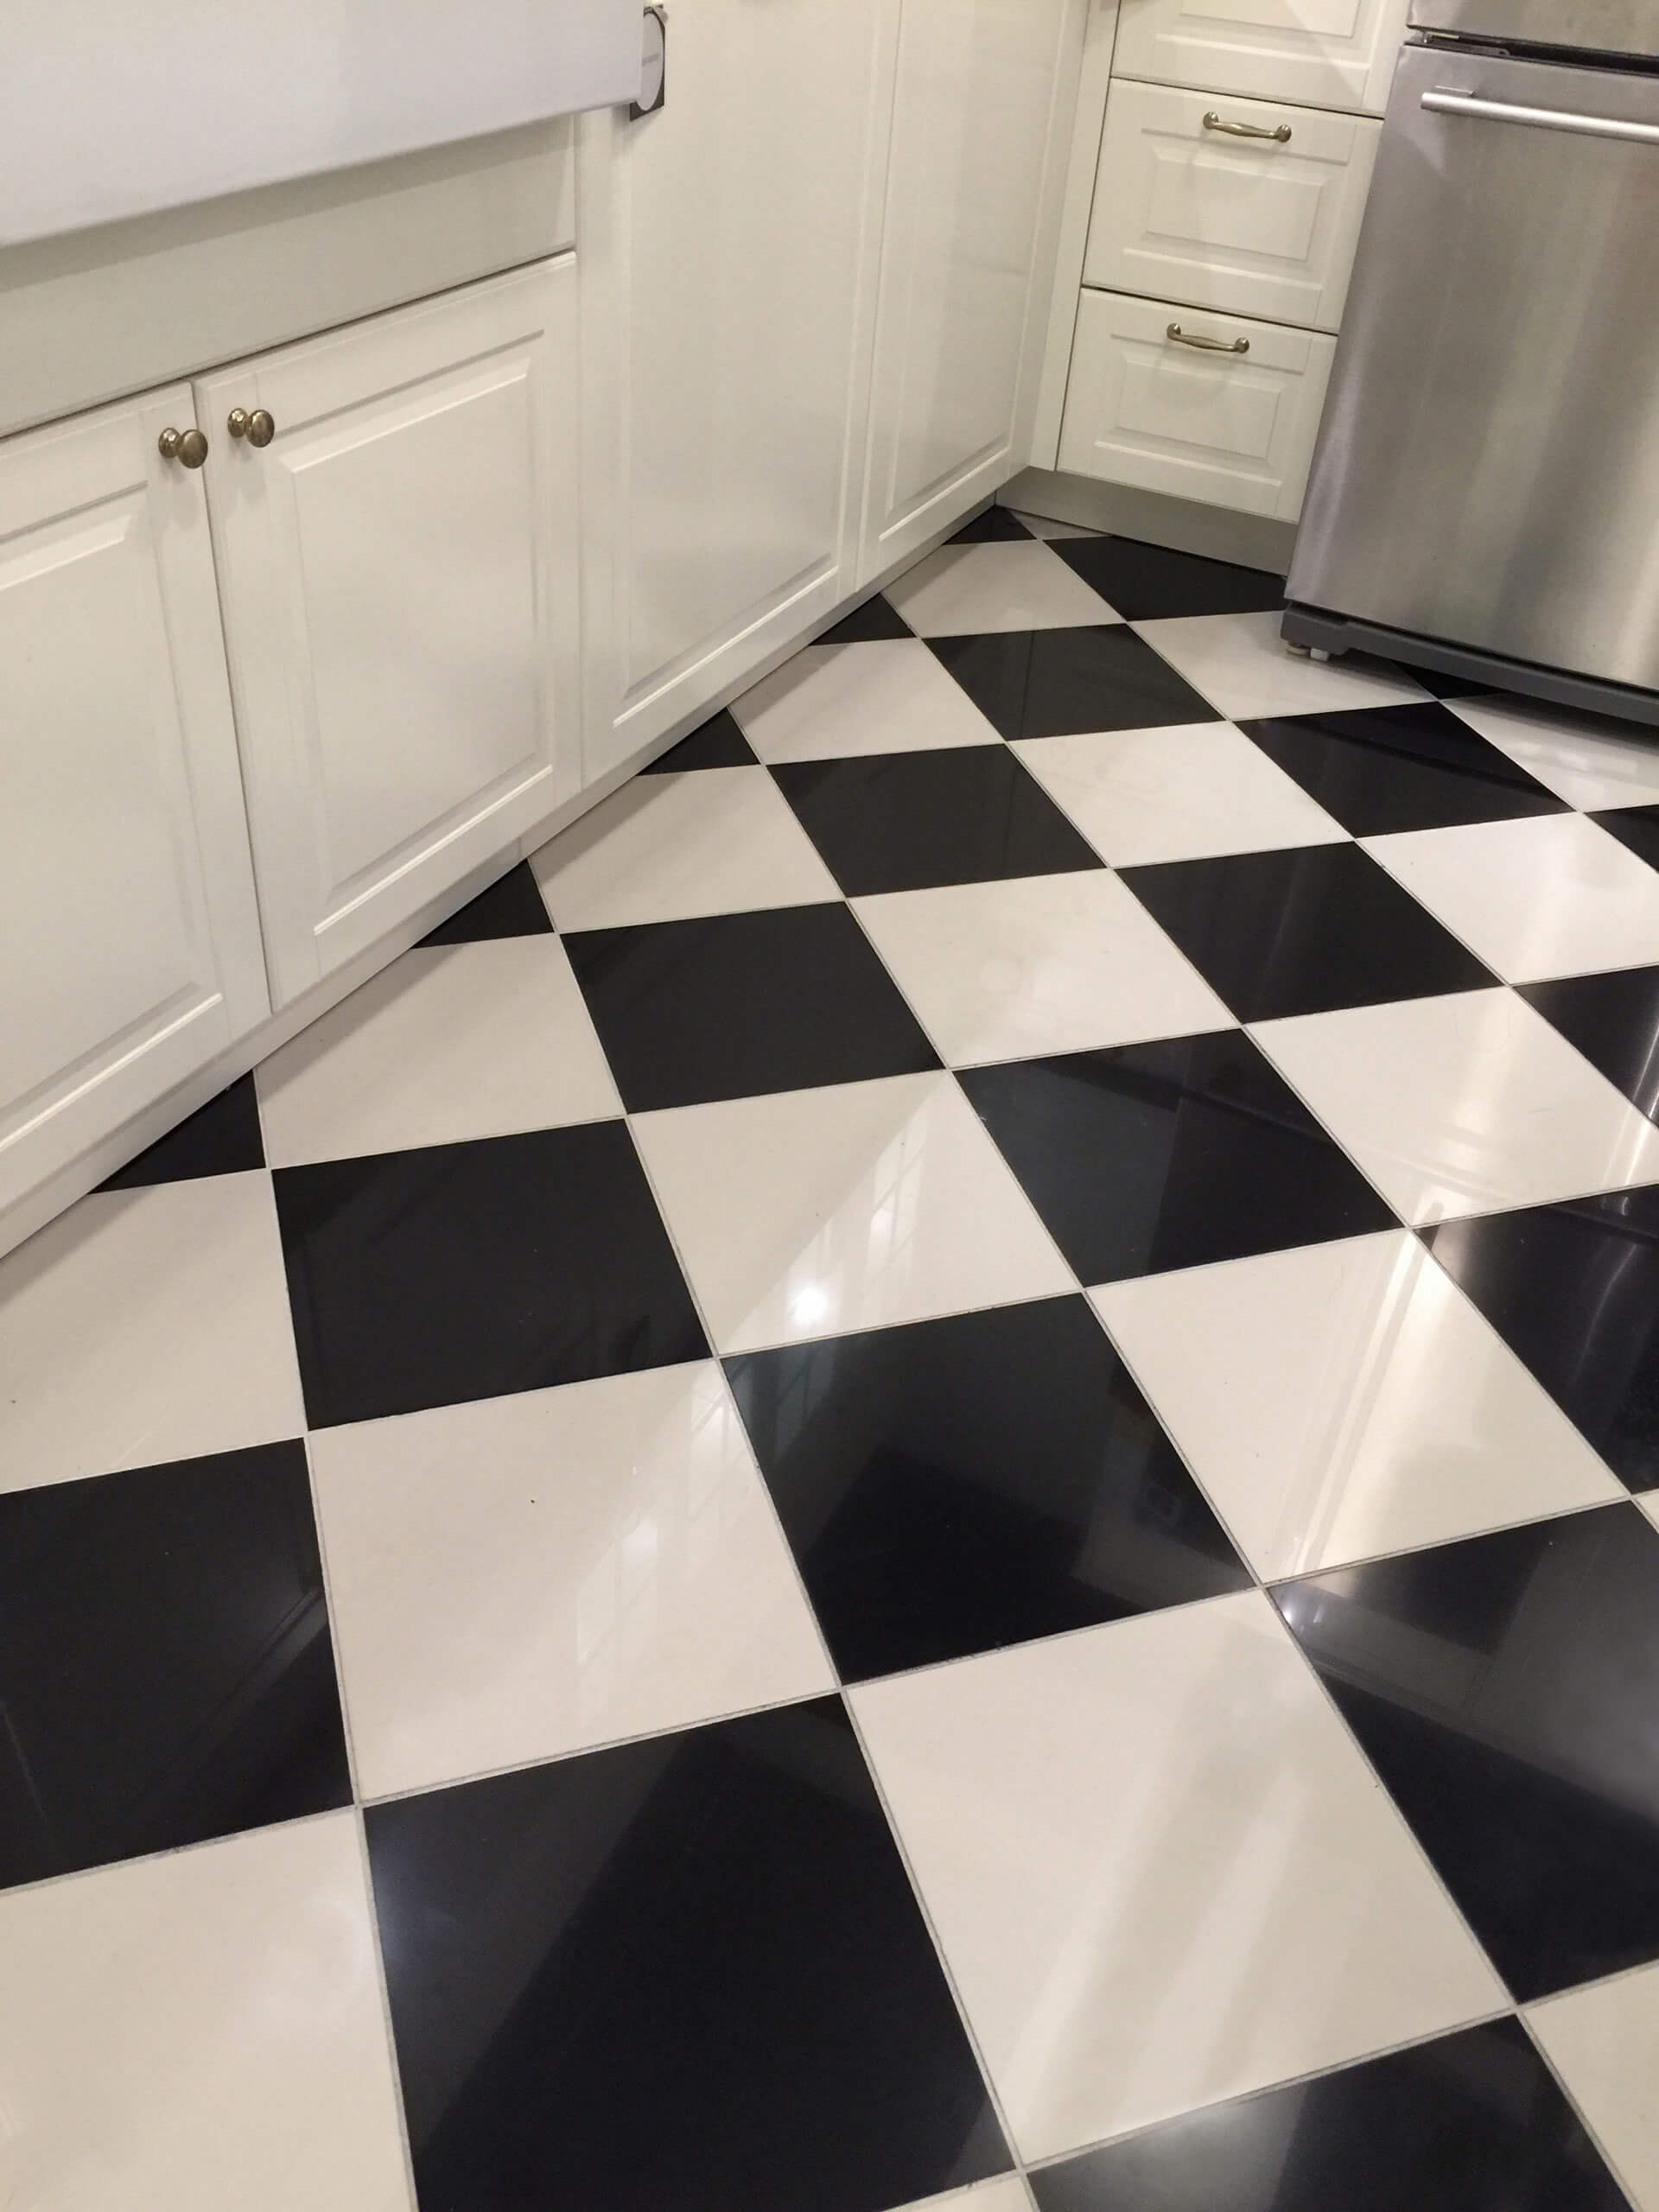 northwest residential floor stripping and waxing services company